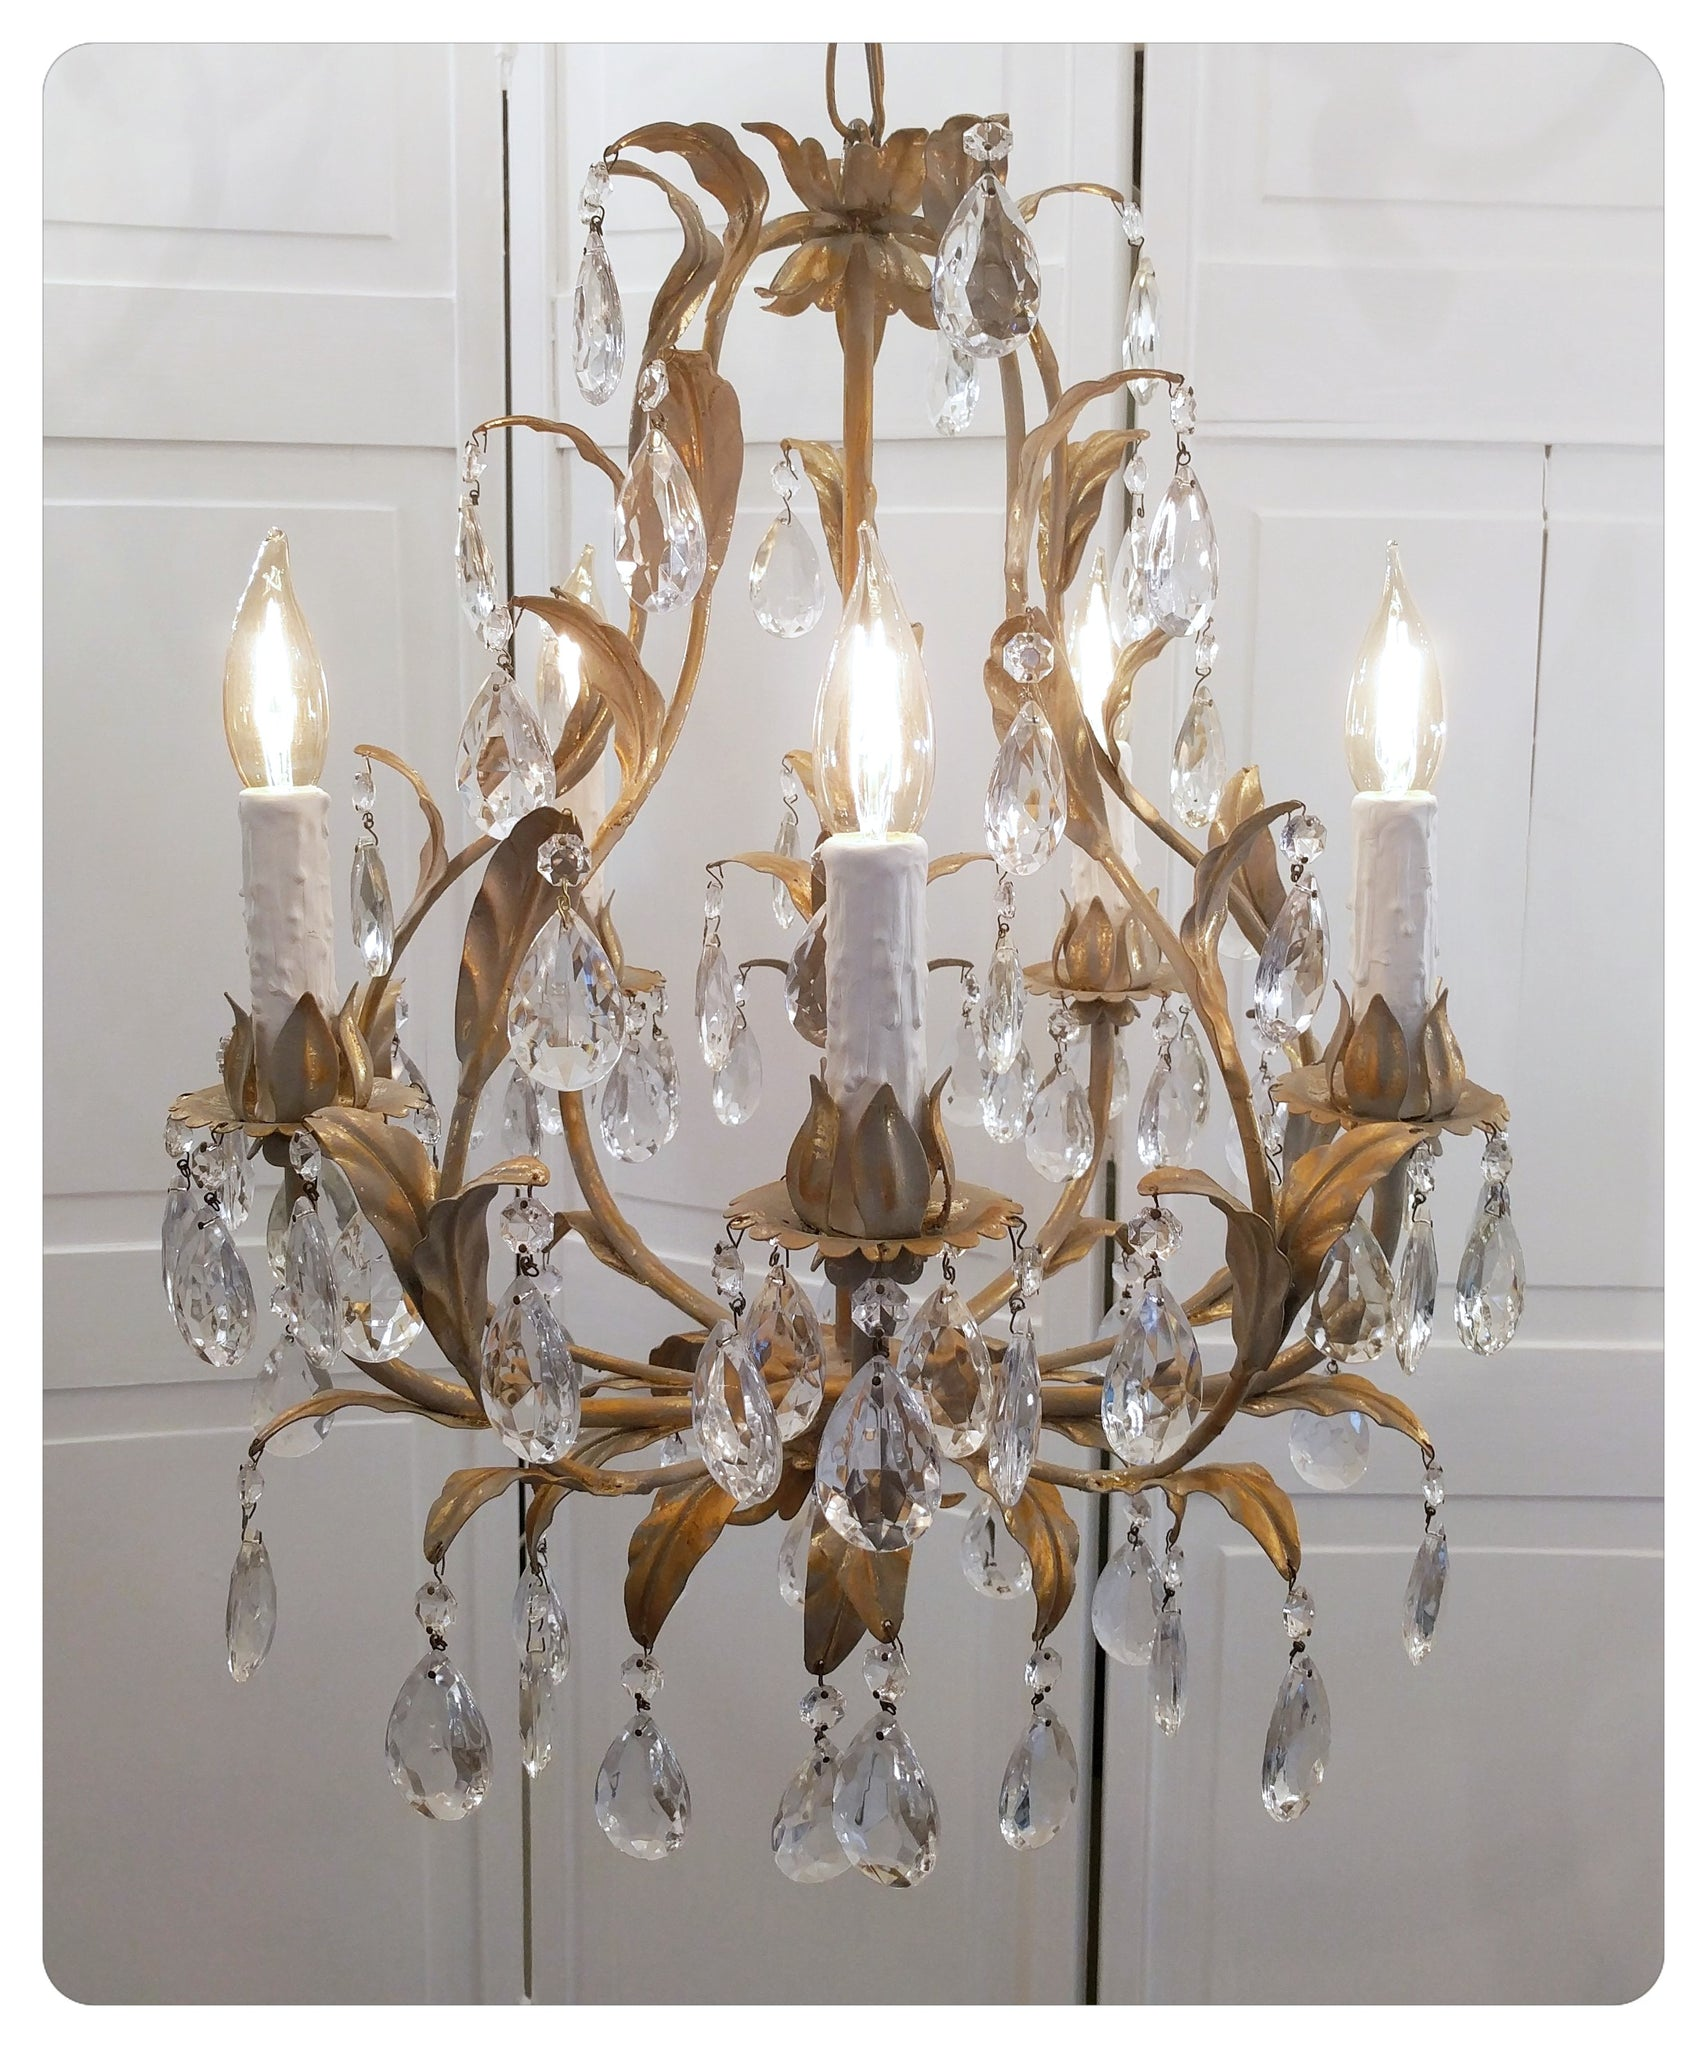 Italian tole chandelier gilt gold antique vintage lighting italian tole chandelier gilt gold antique vintage lighting mendlbarr mozeypictures Image collections